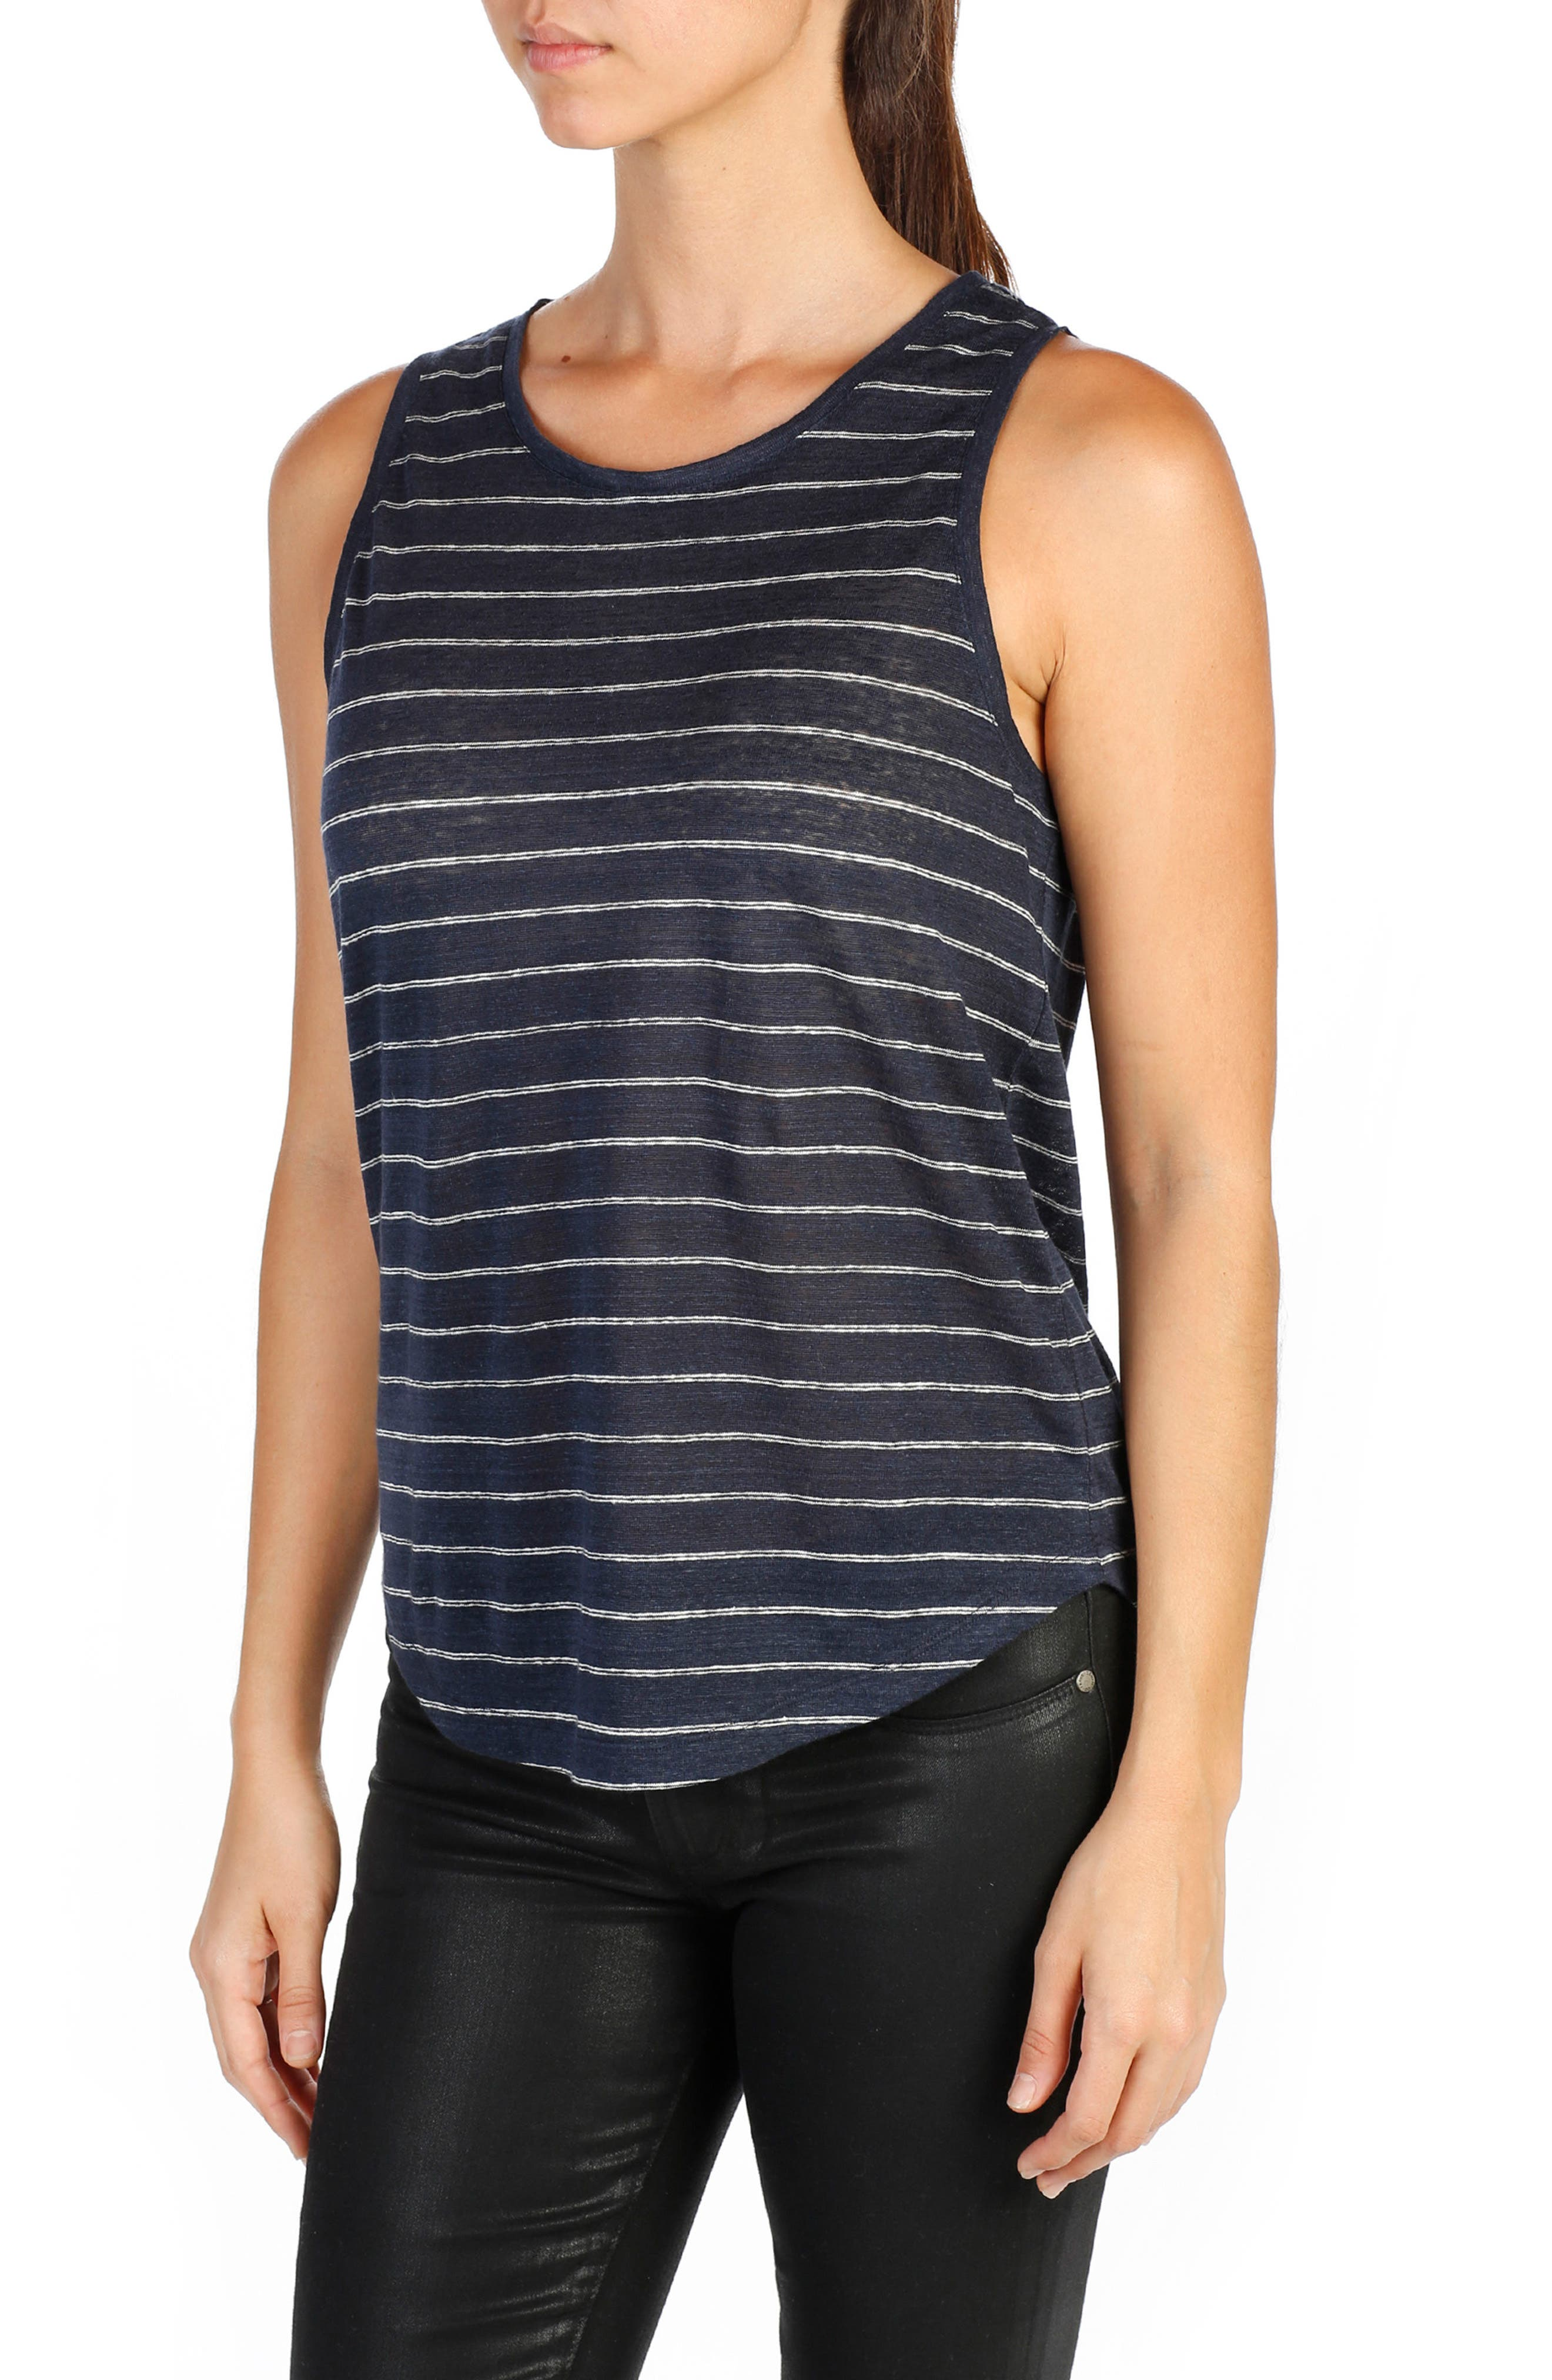 Analia Linen Tank,                             Main thumbnail 1, color,                             Dark Ink Blue/ White